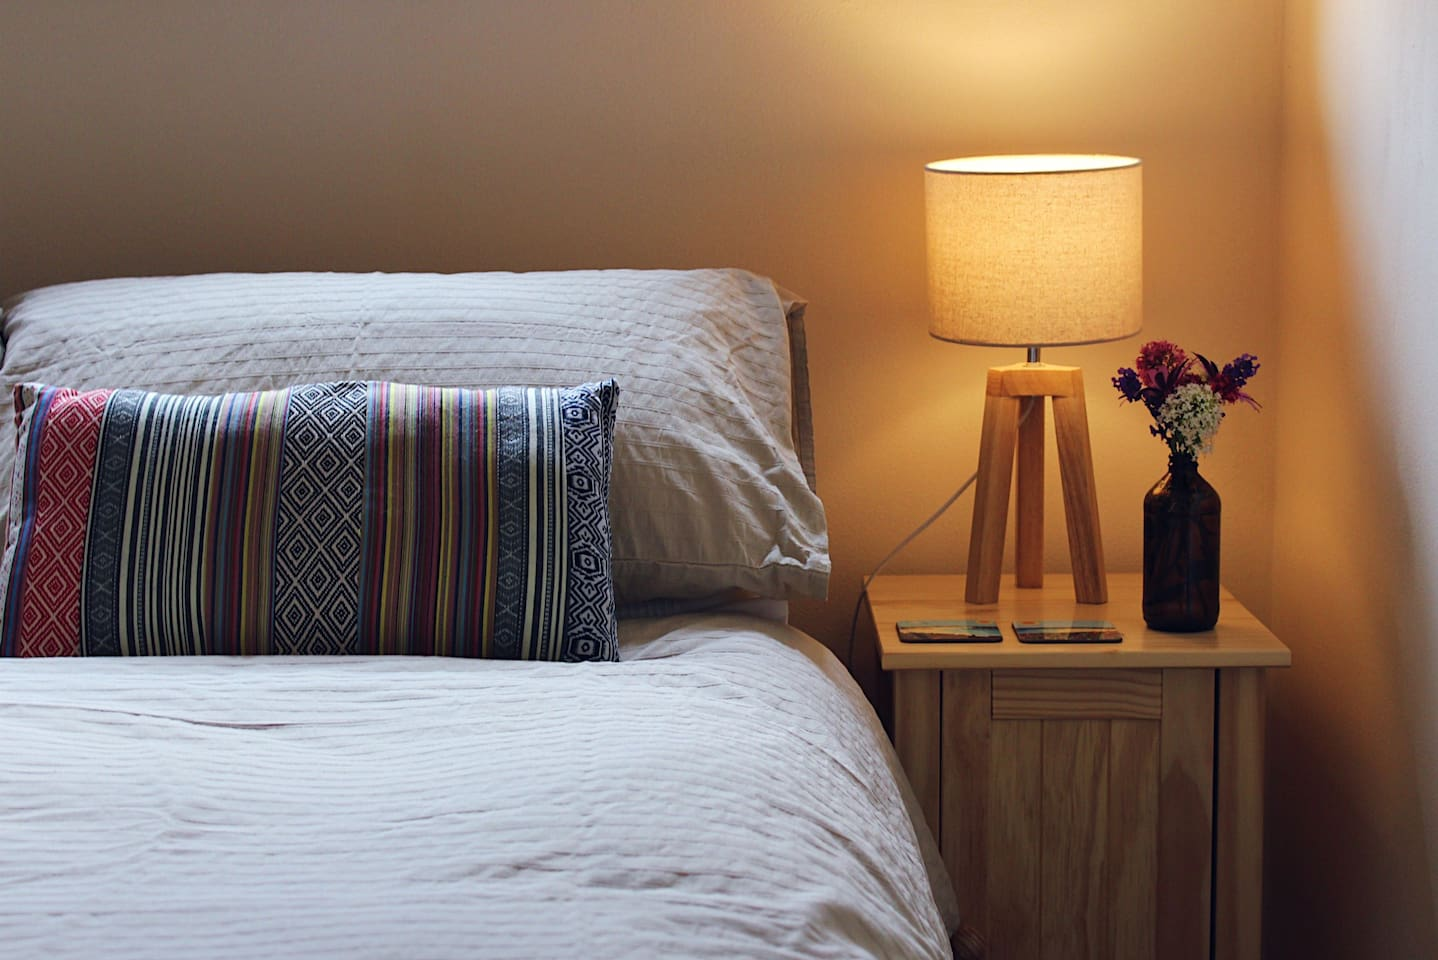 Comfortable double bed with fresh flowers.